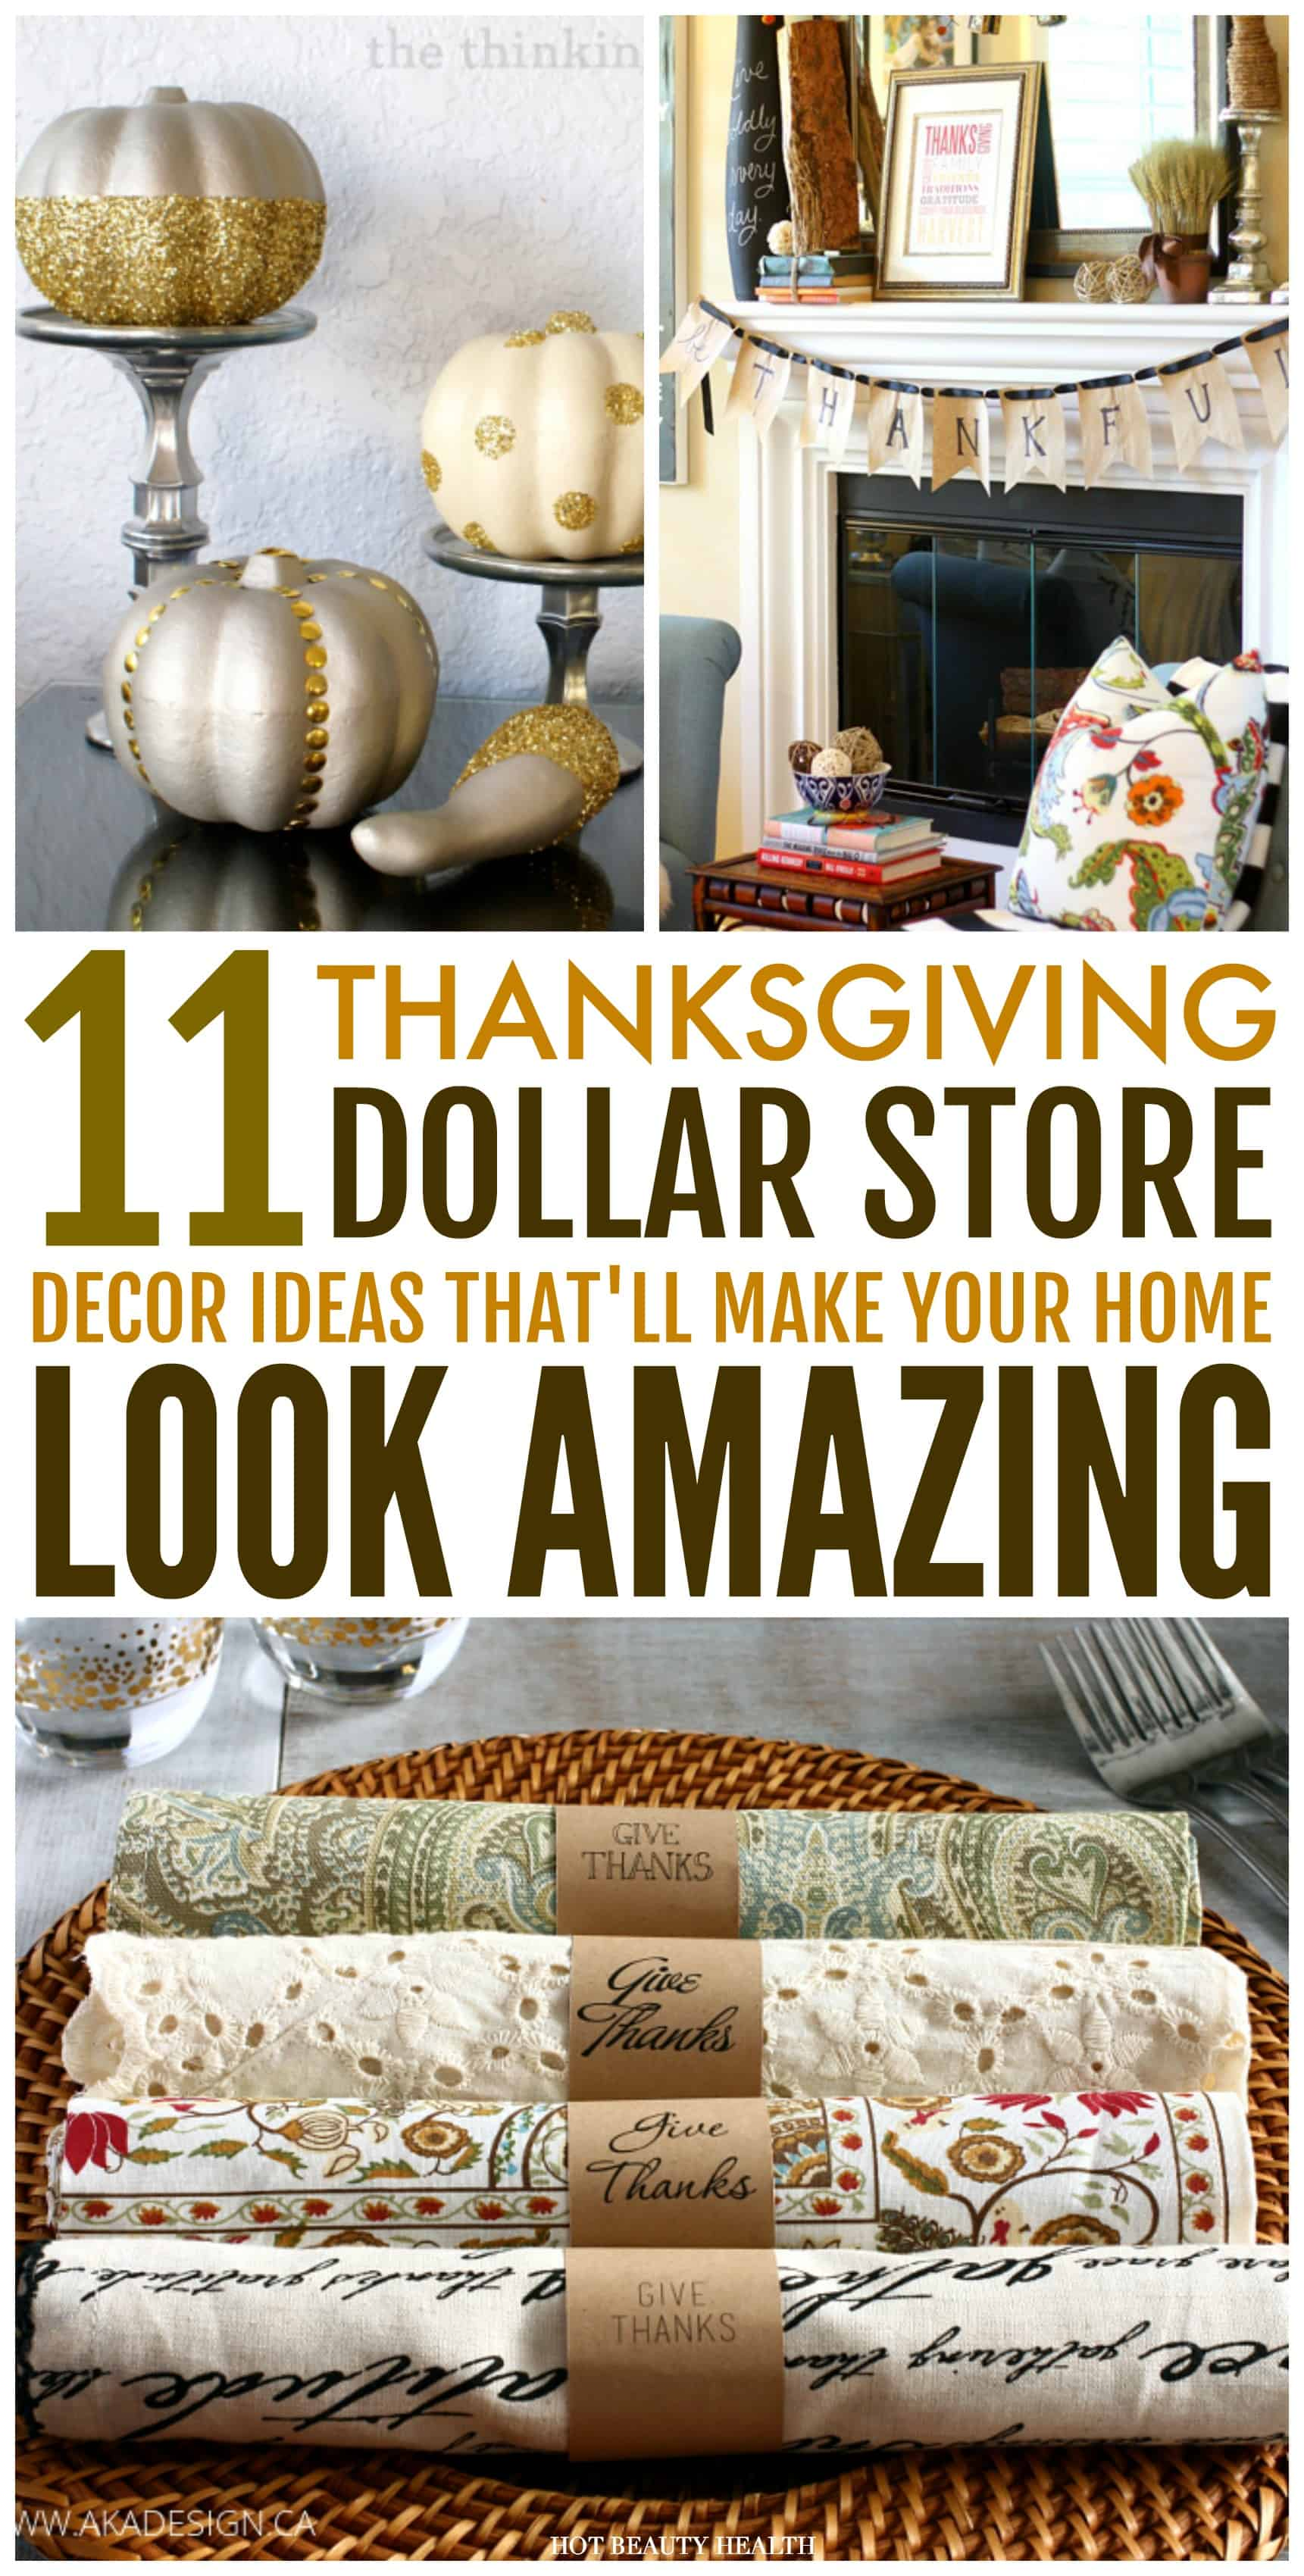 These 11 Dollar Store Thanksgiving Decor Hacks Are Amazing! These Home  Decor Ideas Are Super